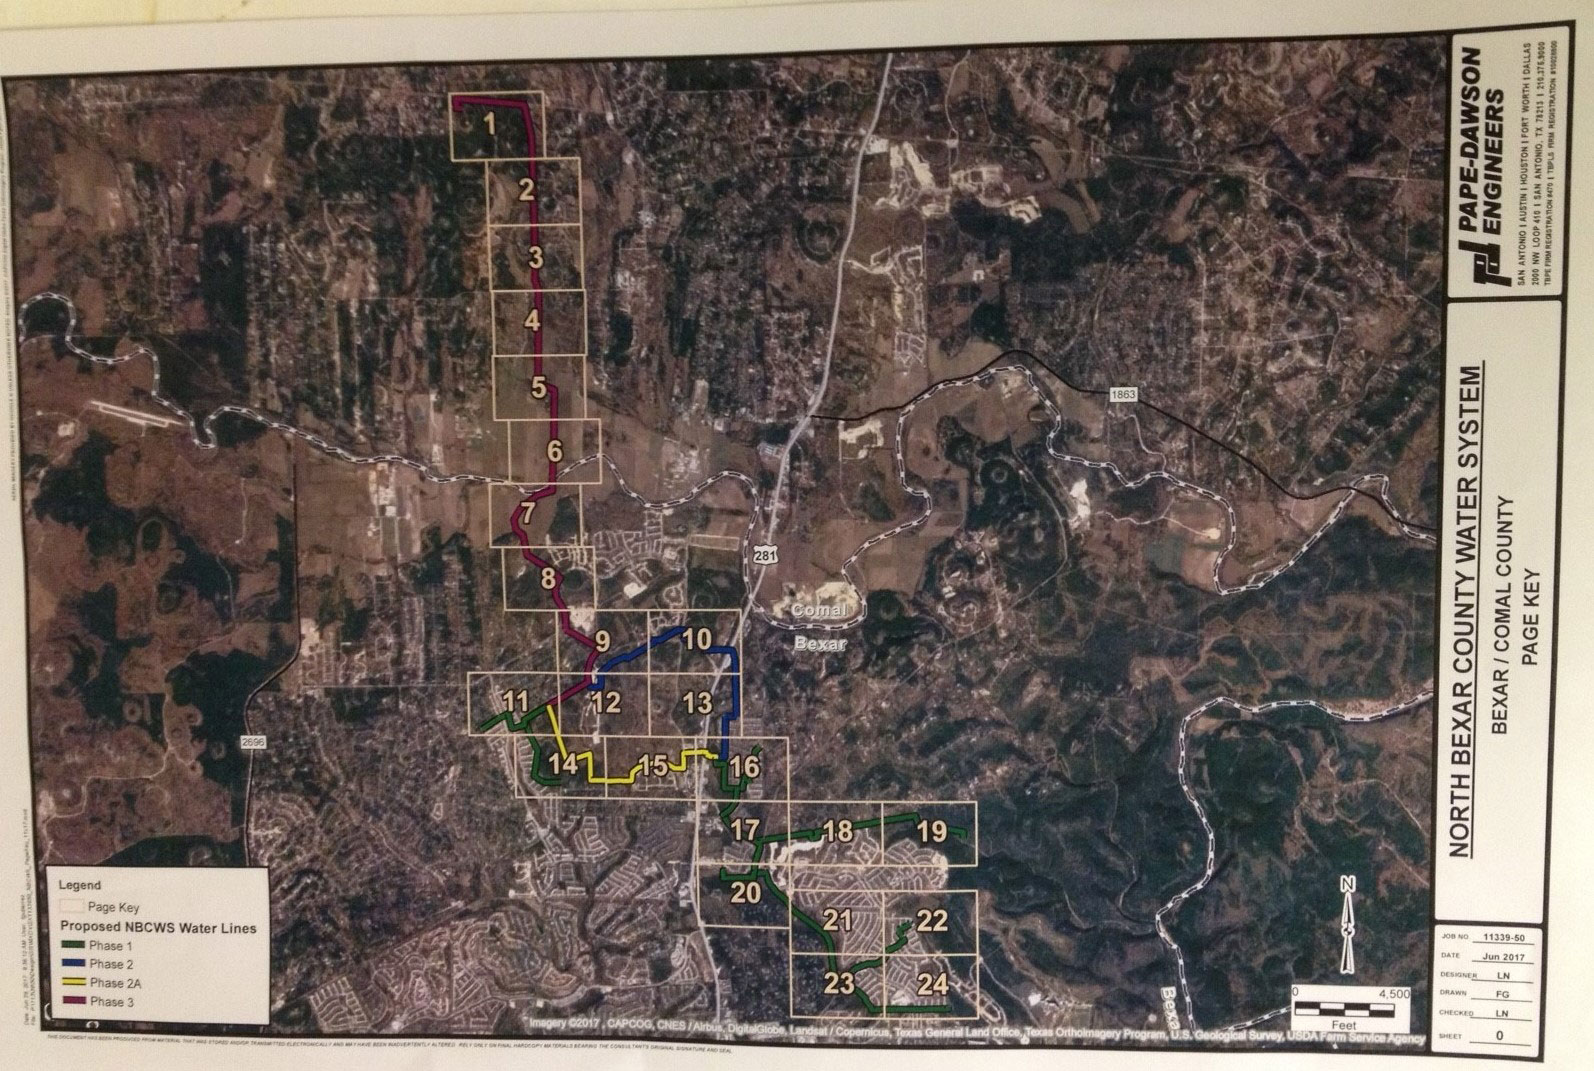 SCWSC Pipeline Map Stopped at Top of 4 at Ammann Road City of Bulverde Did NOT Approve Special Permit for (2) 4 Million Gallon H2O Storage Tanks & Pump Station Proposed at 1